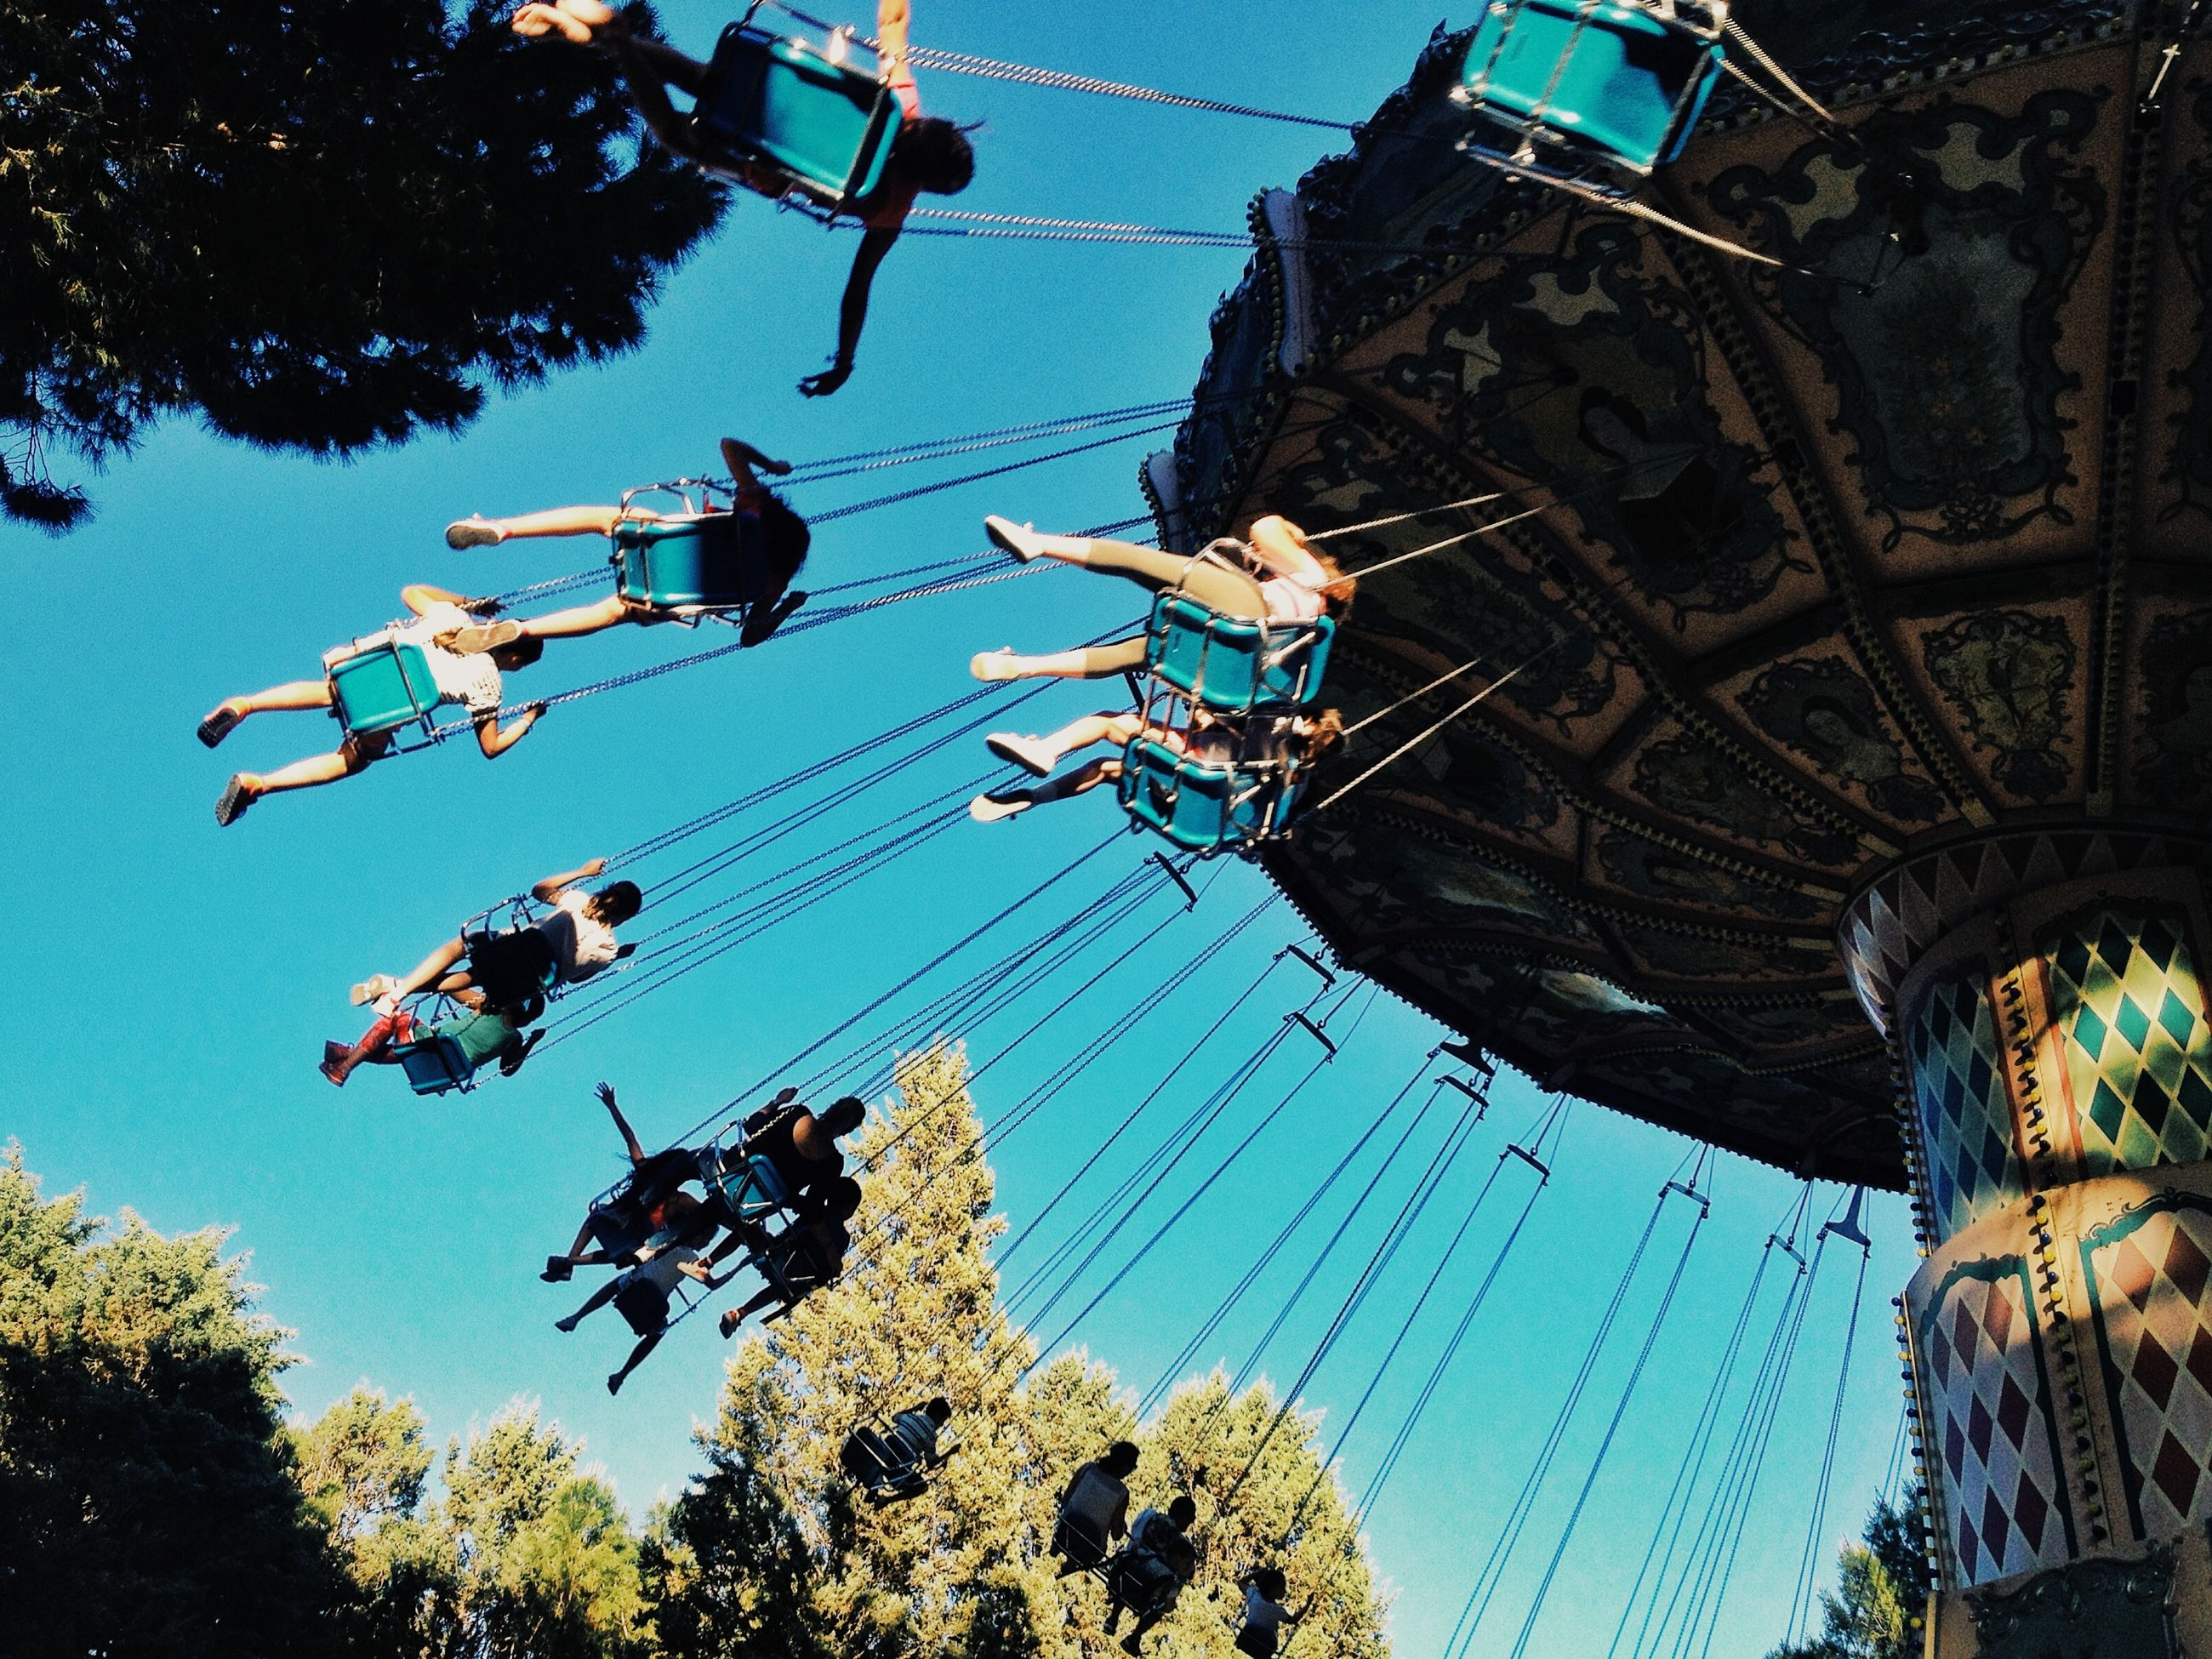 low angle view, tree, amusement park, arts culture and entertainment, amusement park ride, building exterior, clear sky, built structure, architecture, leisure activity, ferris wheel, sky, fun, enjoyment, blue, hanging, outdoors, large group of people, chain swing ride